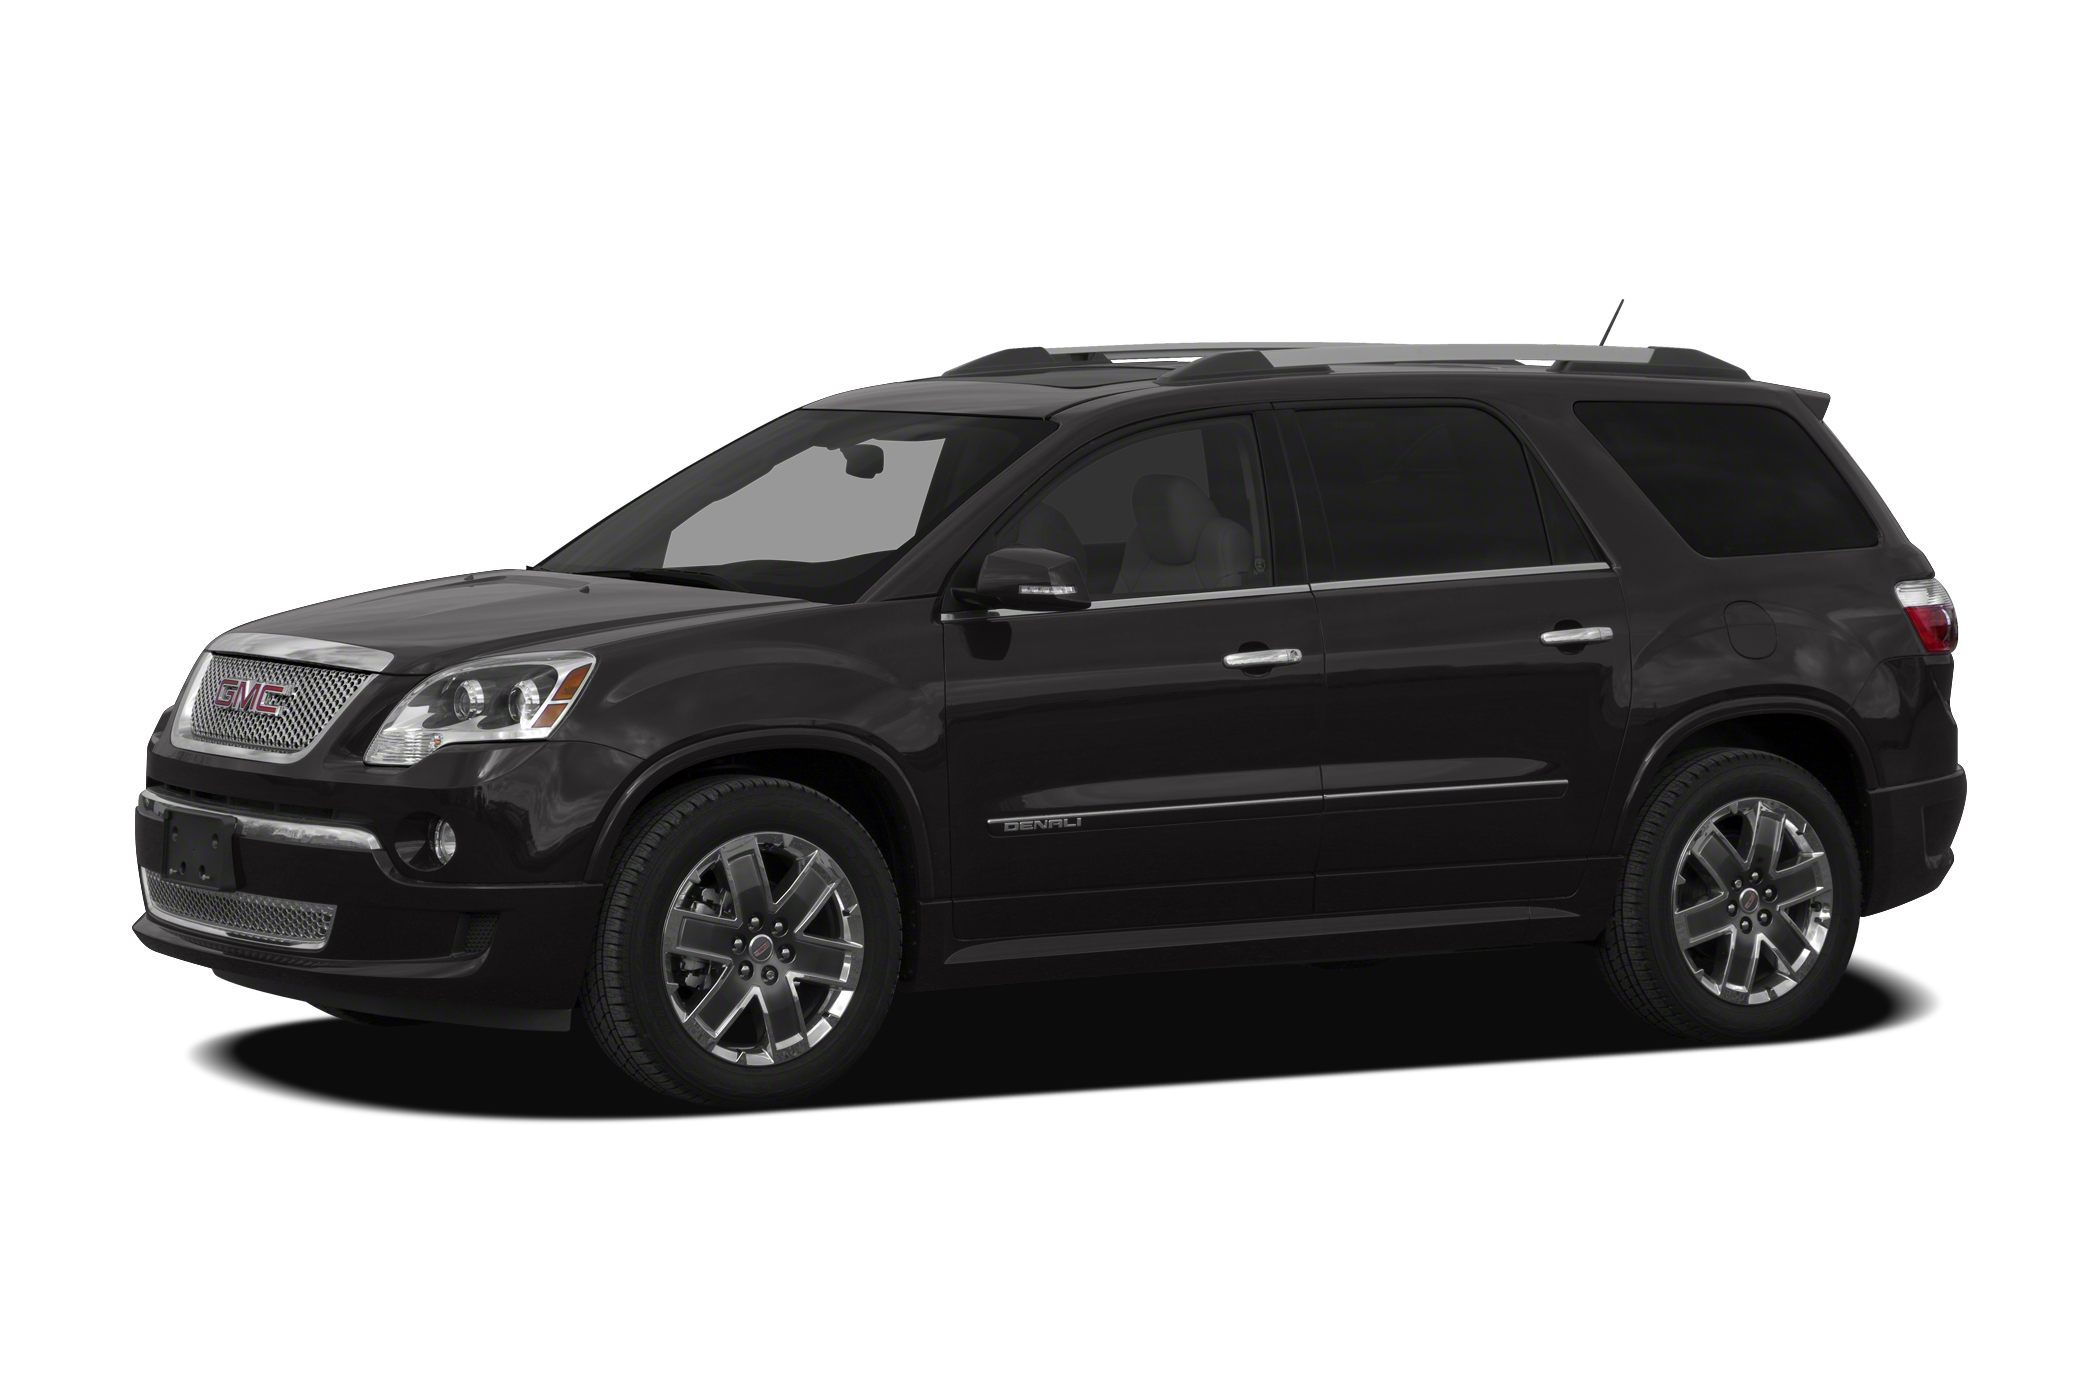 2012 GMC Acadia Denali SUV for sale in Park Rapids for $37,990 with 39,746 miles